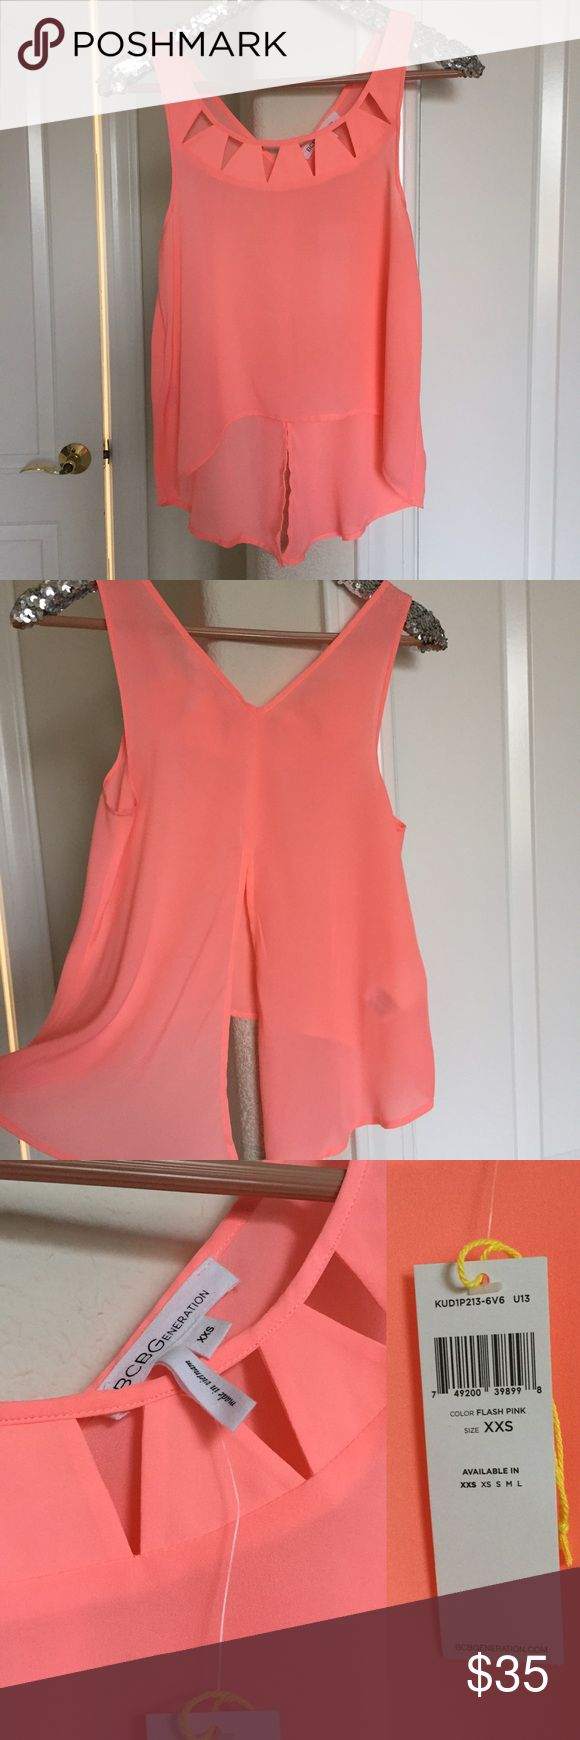 BCBGeneration Cutout Top Brand new with tag! Bright coral color. Size XXS (US 0) but can also fit XS! BCBGeneration Tops Crop Tops